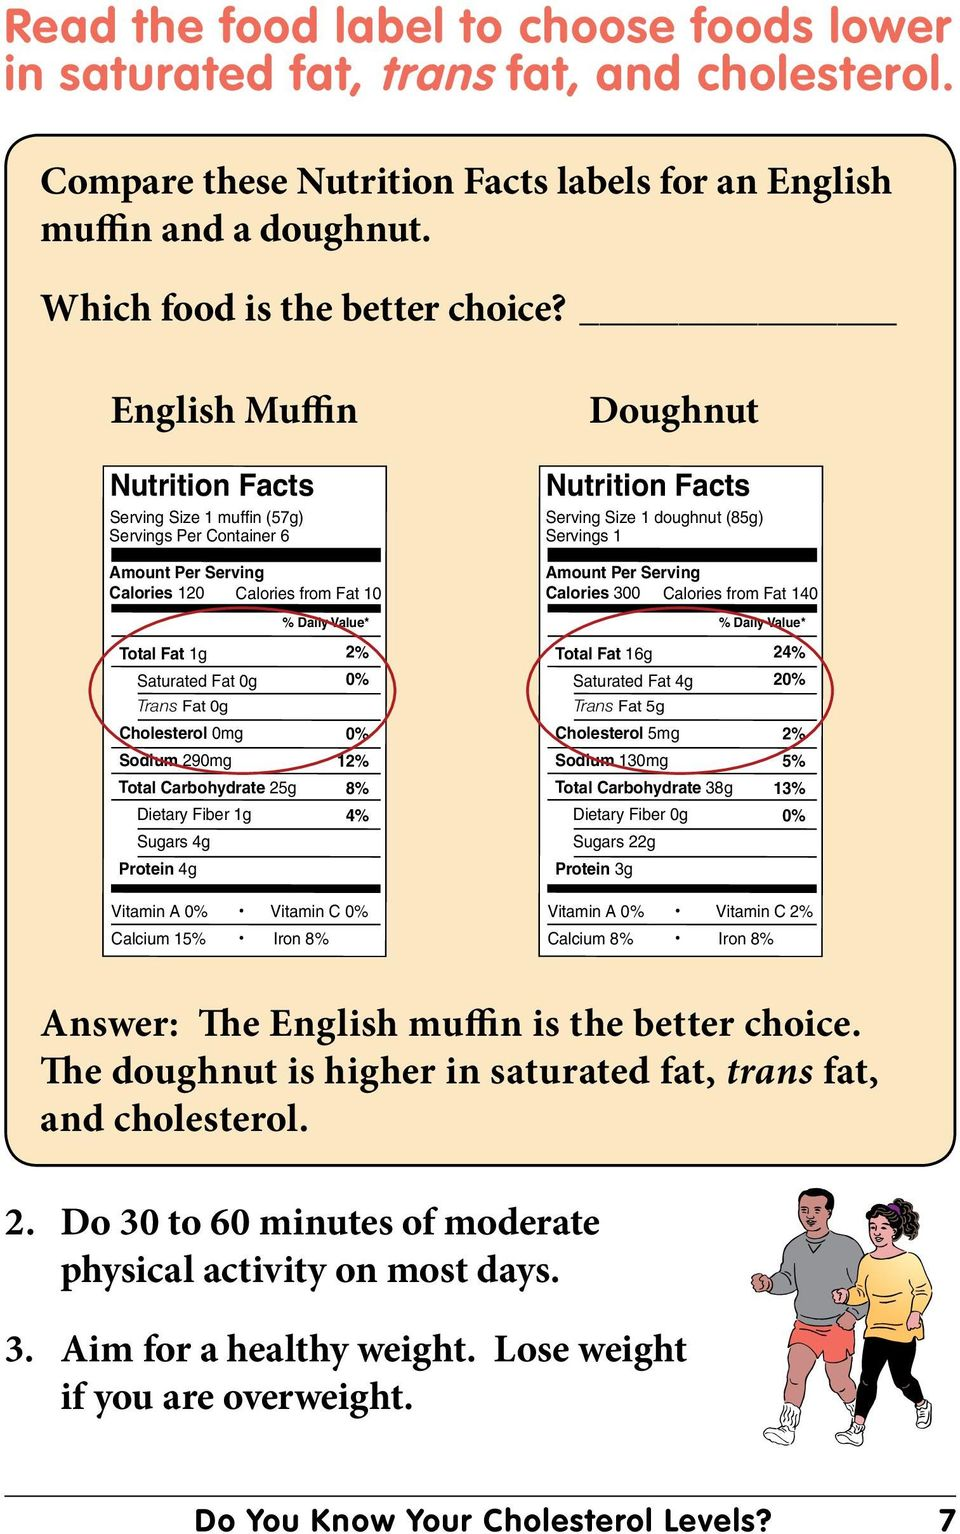 doughnut (85g) Servings 1 Amount Per Serving Calories 300 Calories from Fat 140 % Daily Value* Total Fat 1g Saturated Fat 0g Trans Fat 0g Cholesterol 0mg Sodium 290mg Total Carbohydrate 25g Dietary